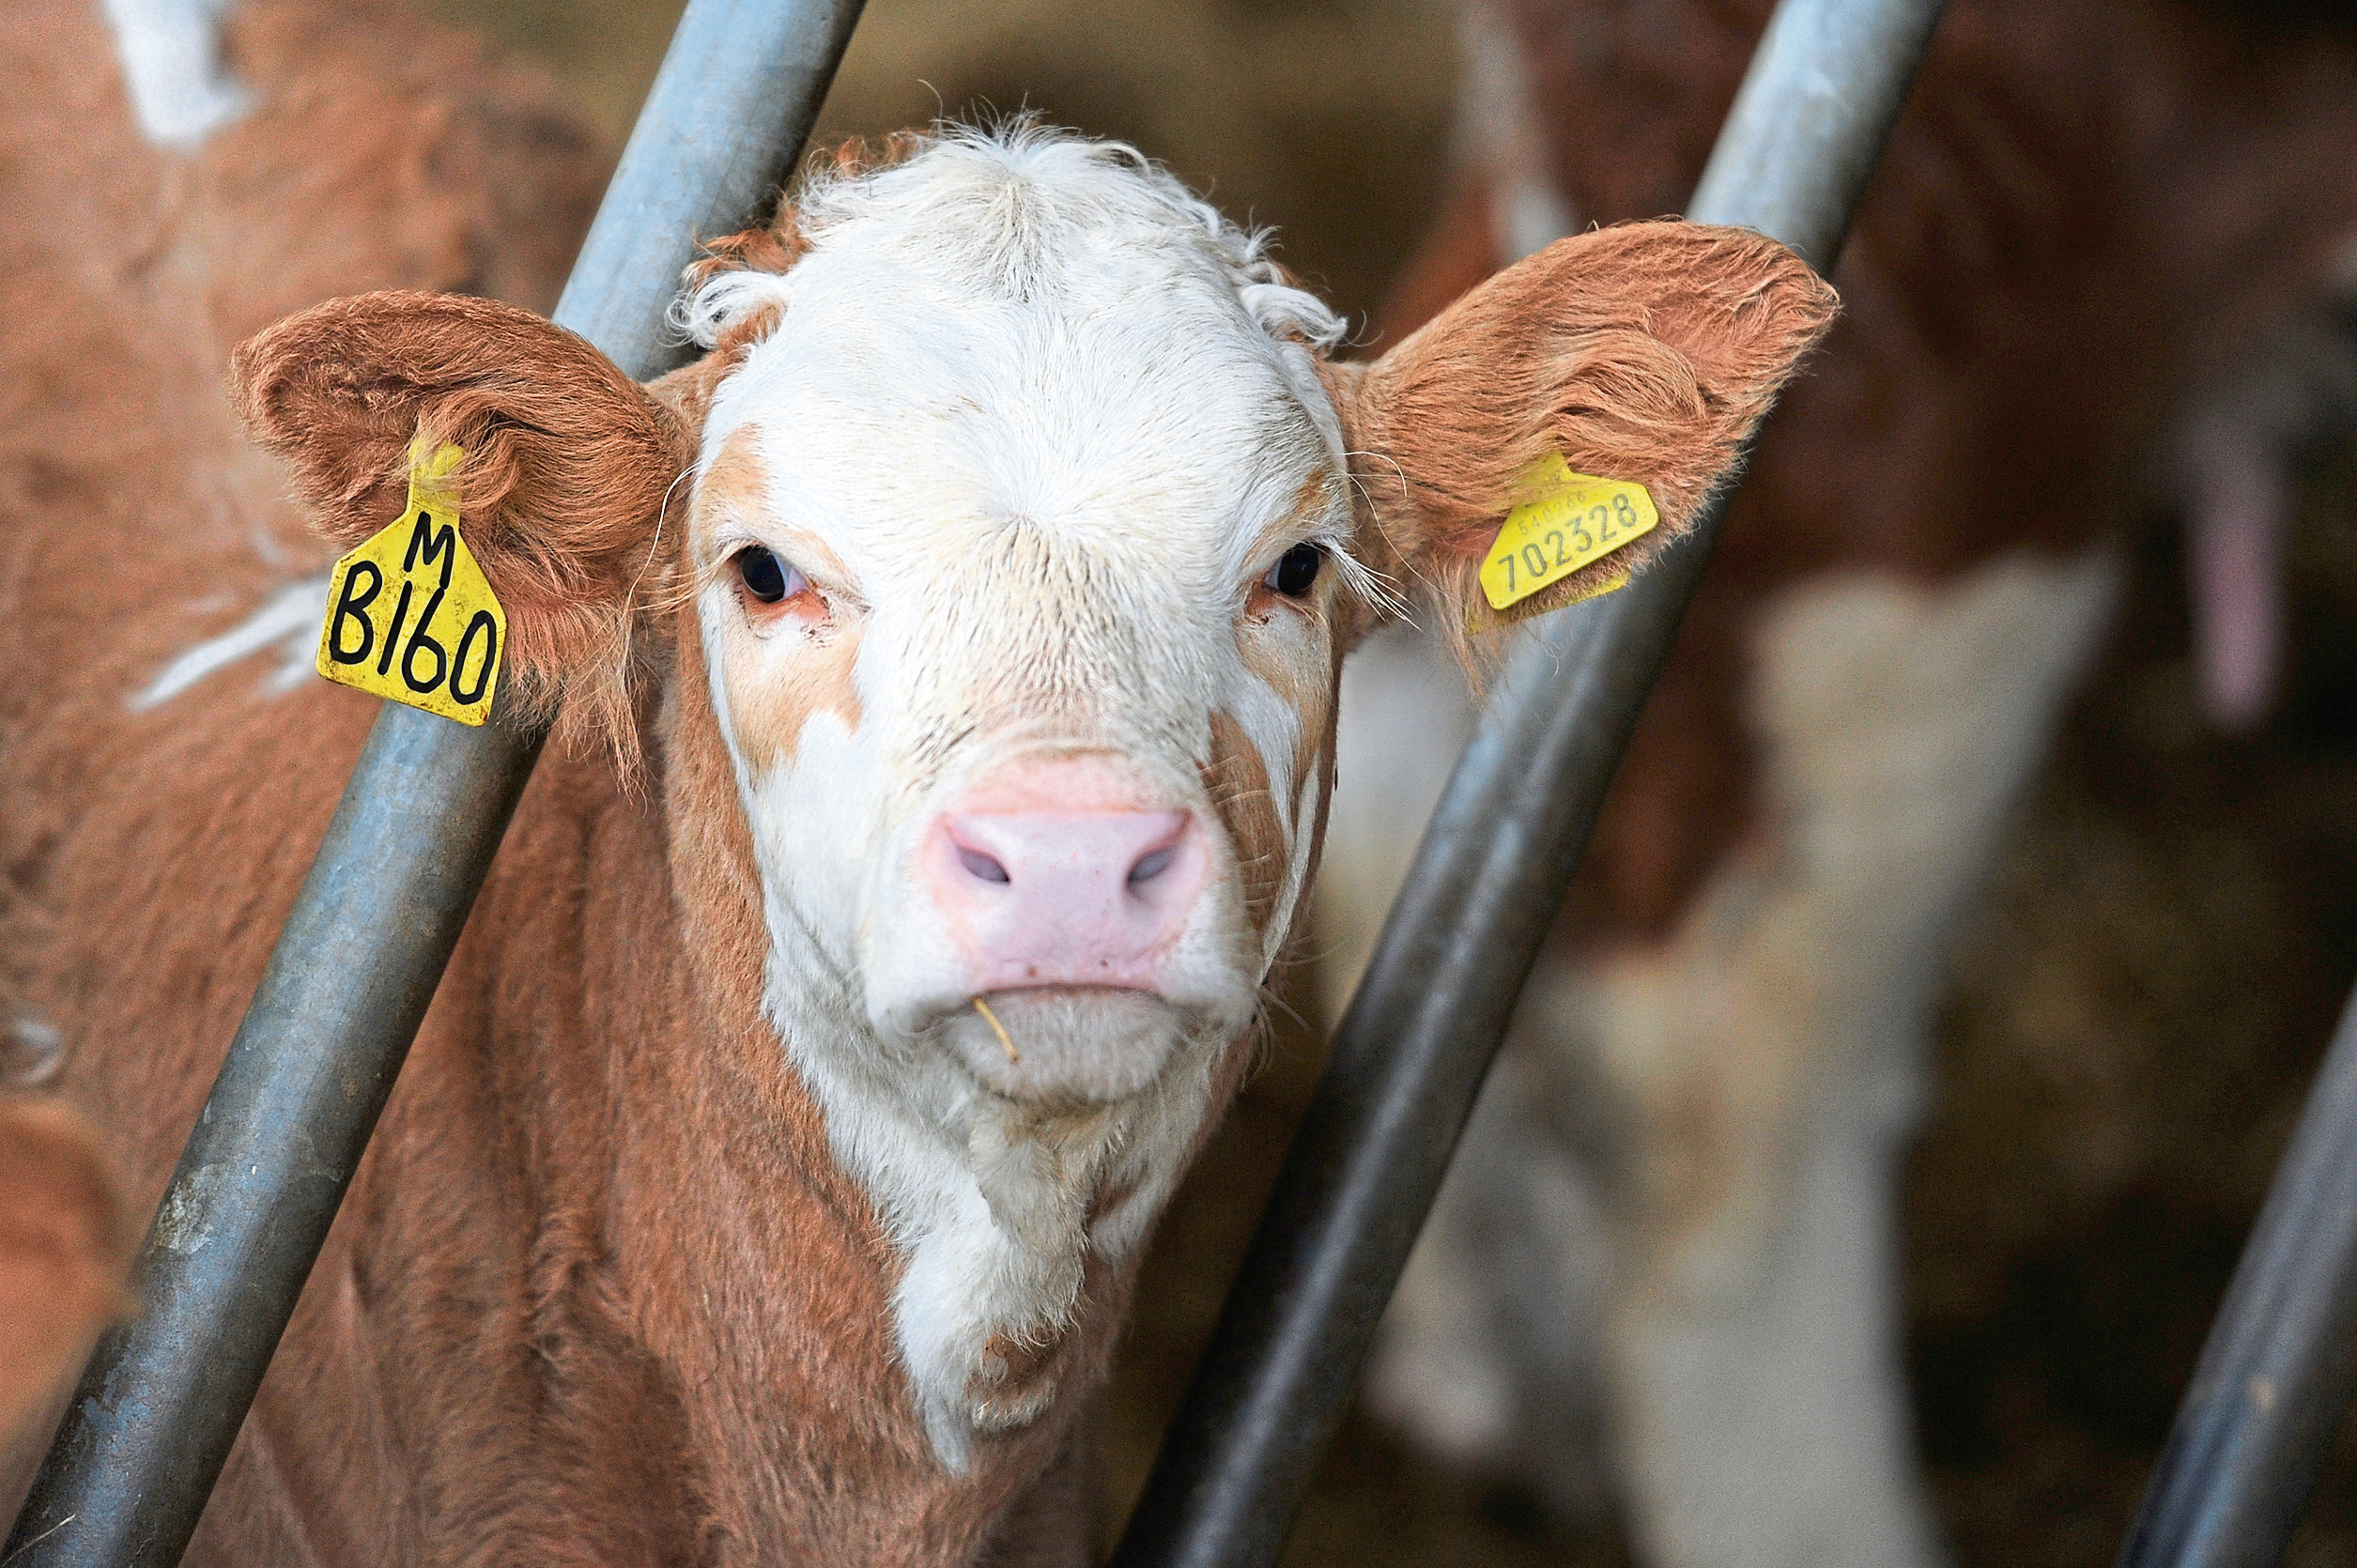 Prime beef production is likely to decline as 2019 progresses, says a recent survey.